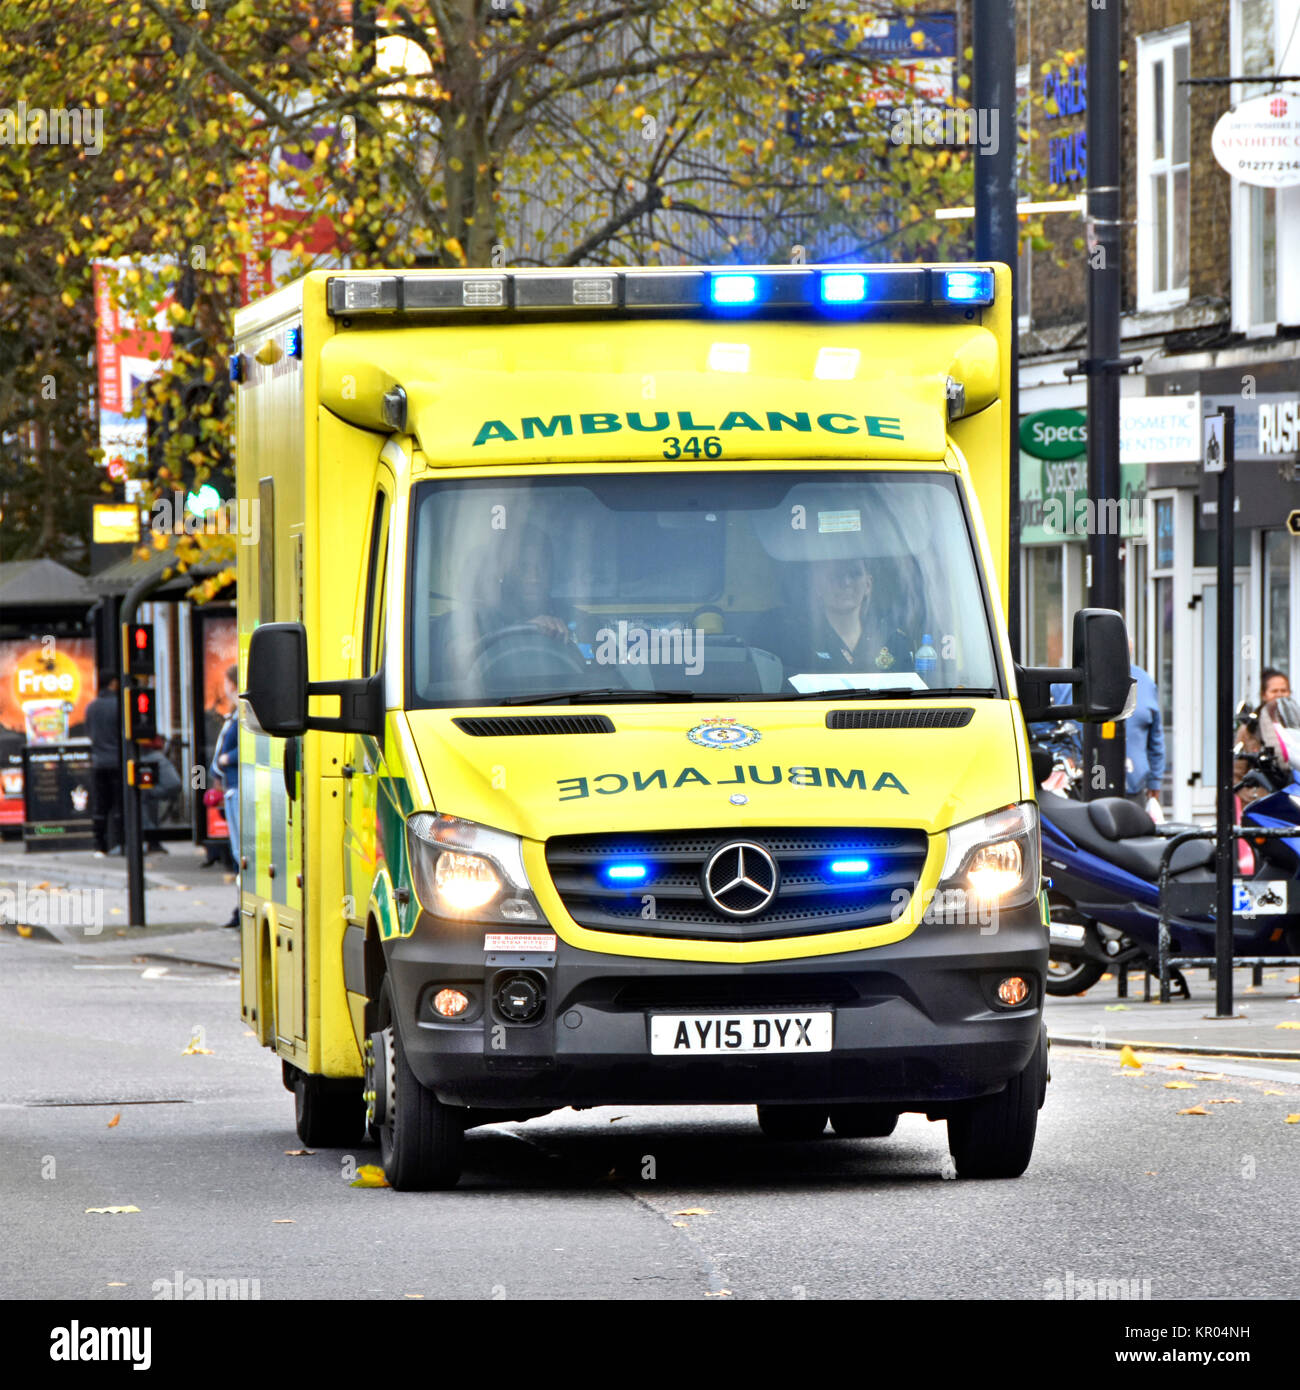 East of England Emergency Ambulance Service NHS vehicle & crew on 999 journey along Brentwood Essex shoppers - Stock Image